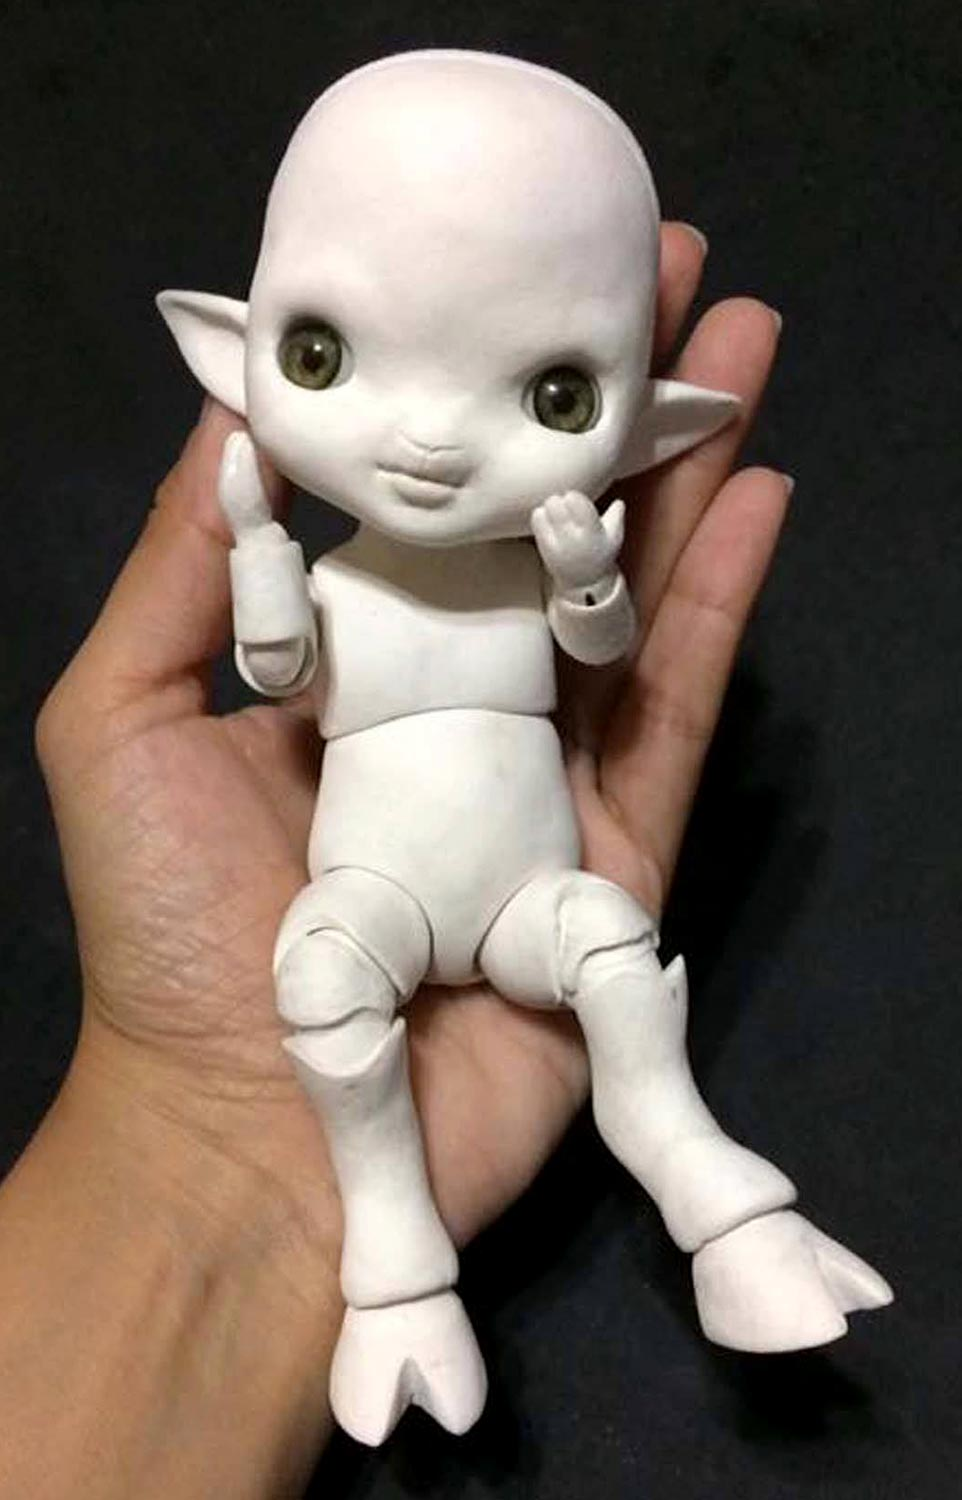 bjd-character-paperclay-03.jpg